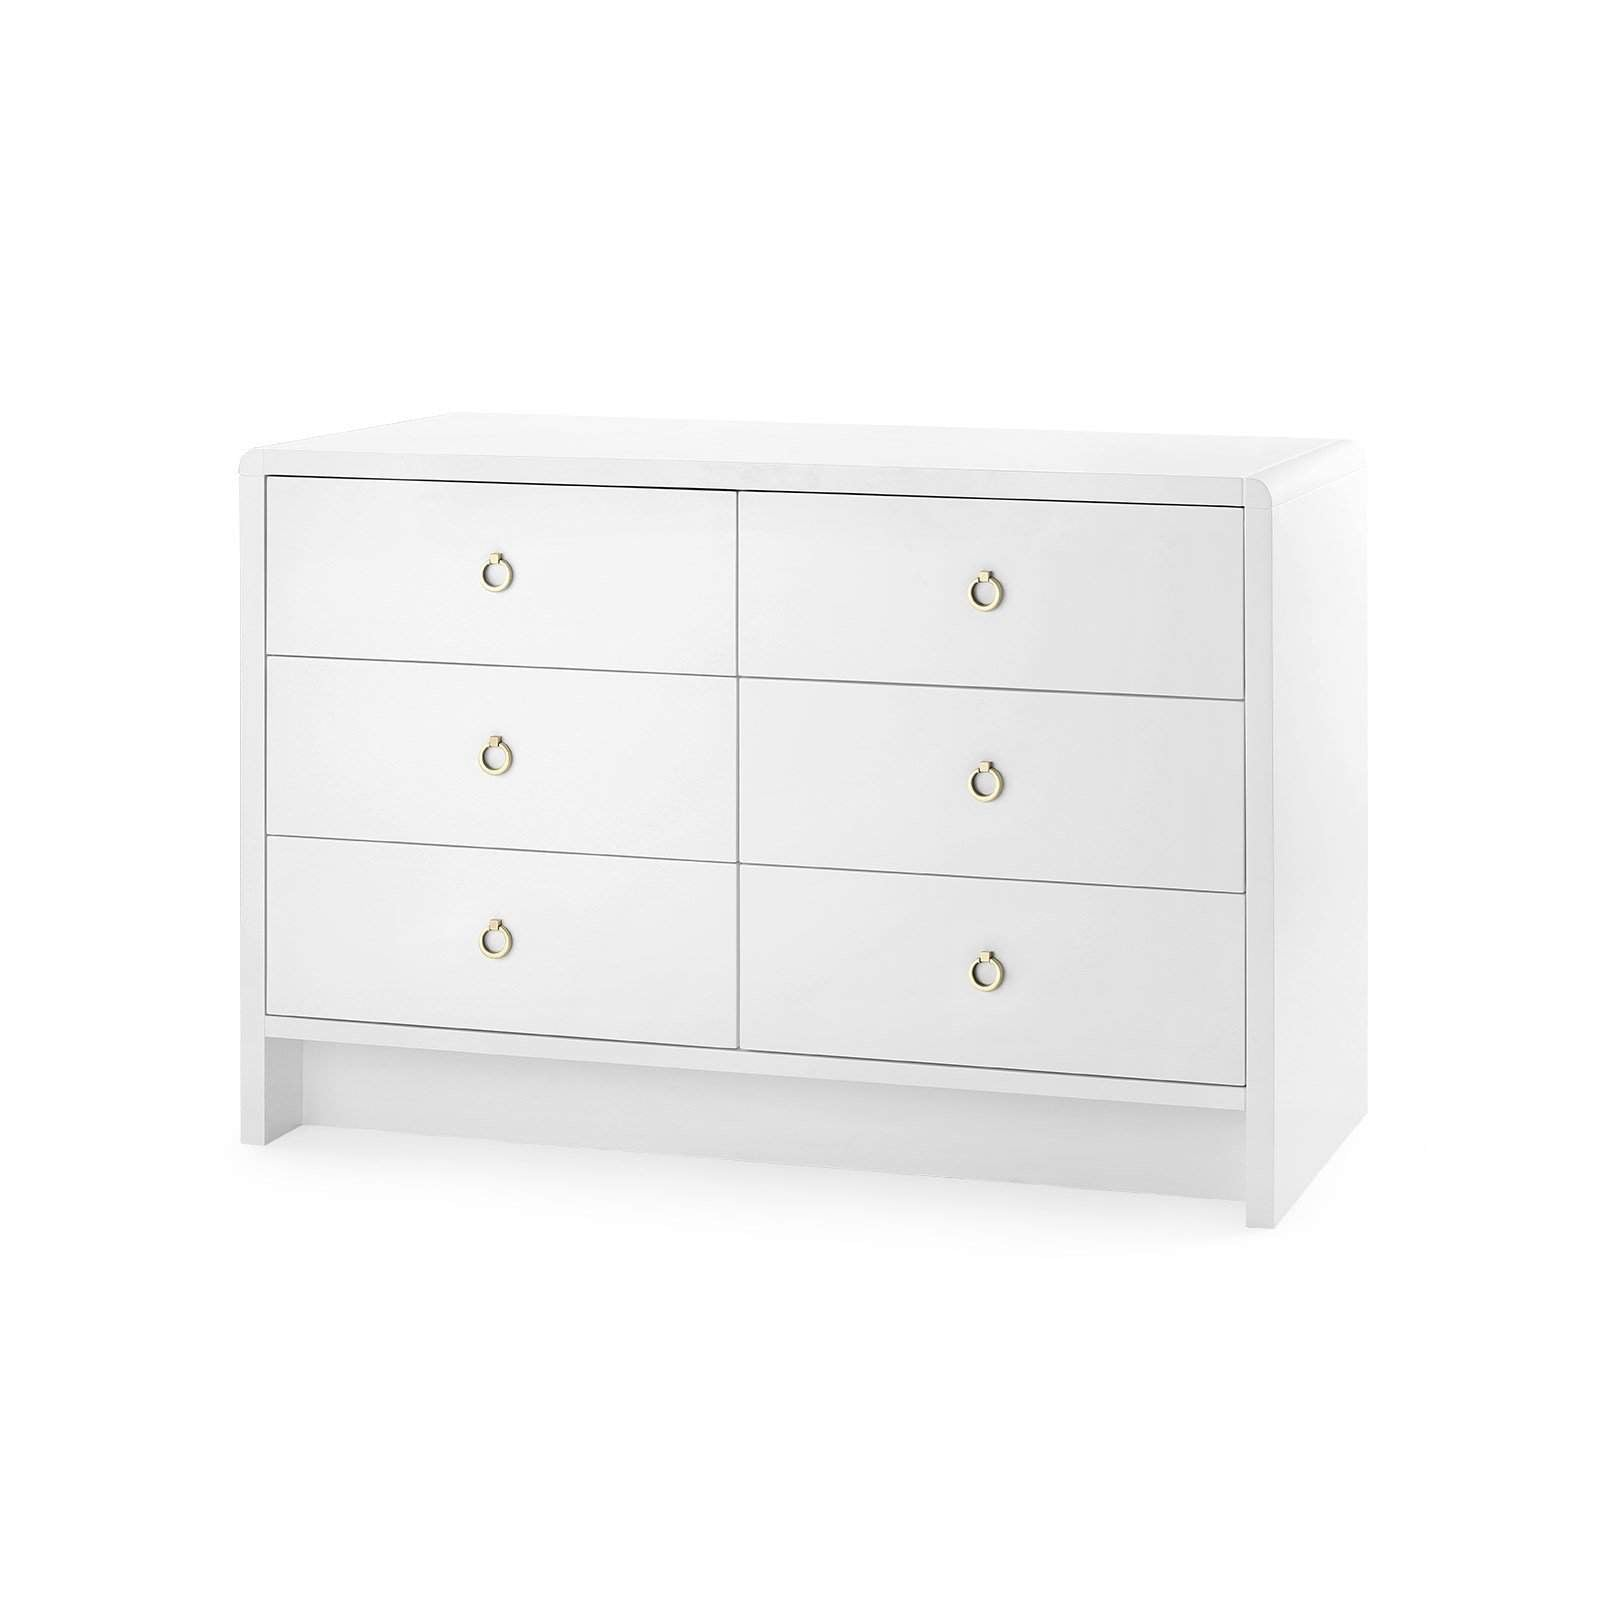 Bungalow 5 - BRYANT EXTRA LARGE 6-DRAWER in WHITE